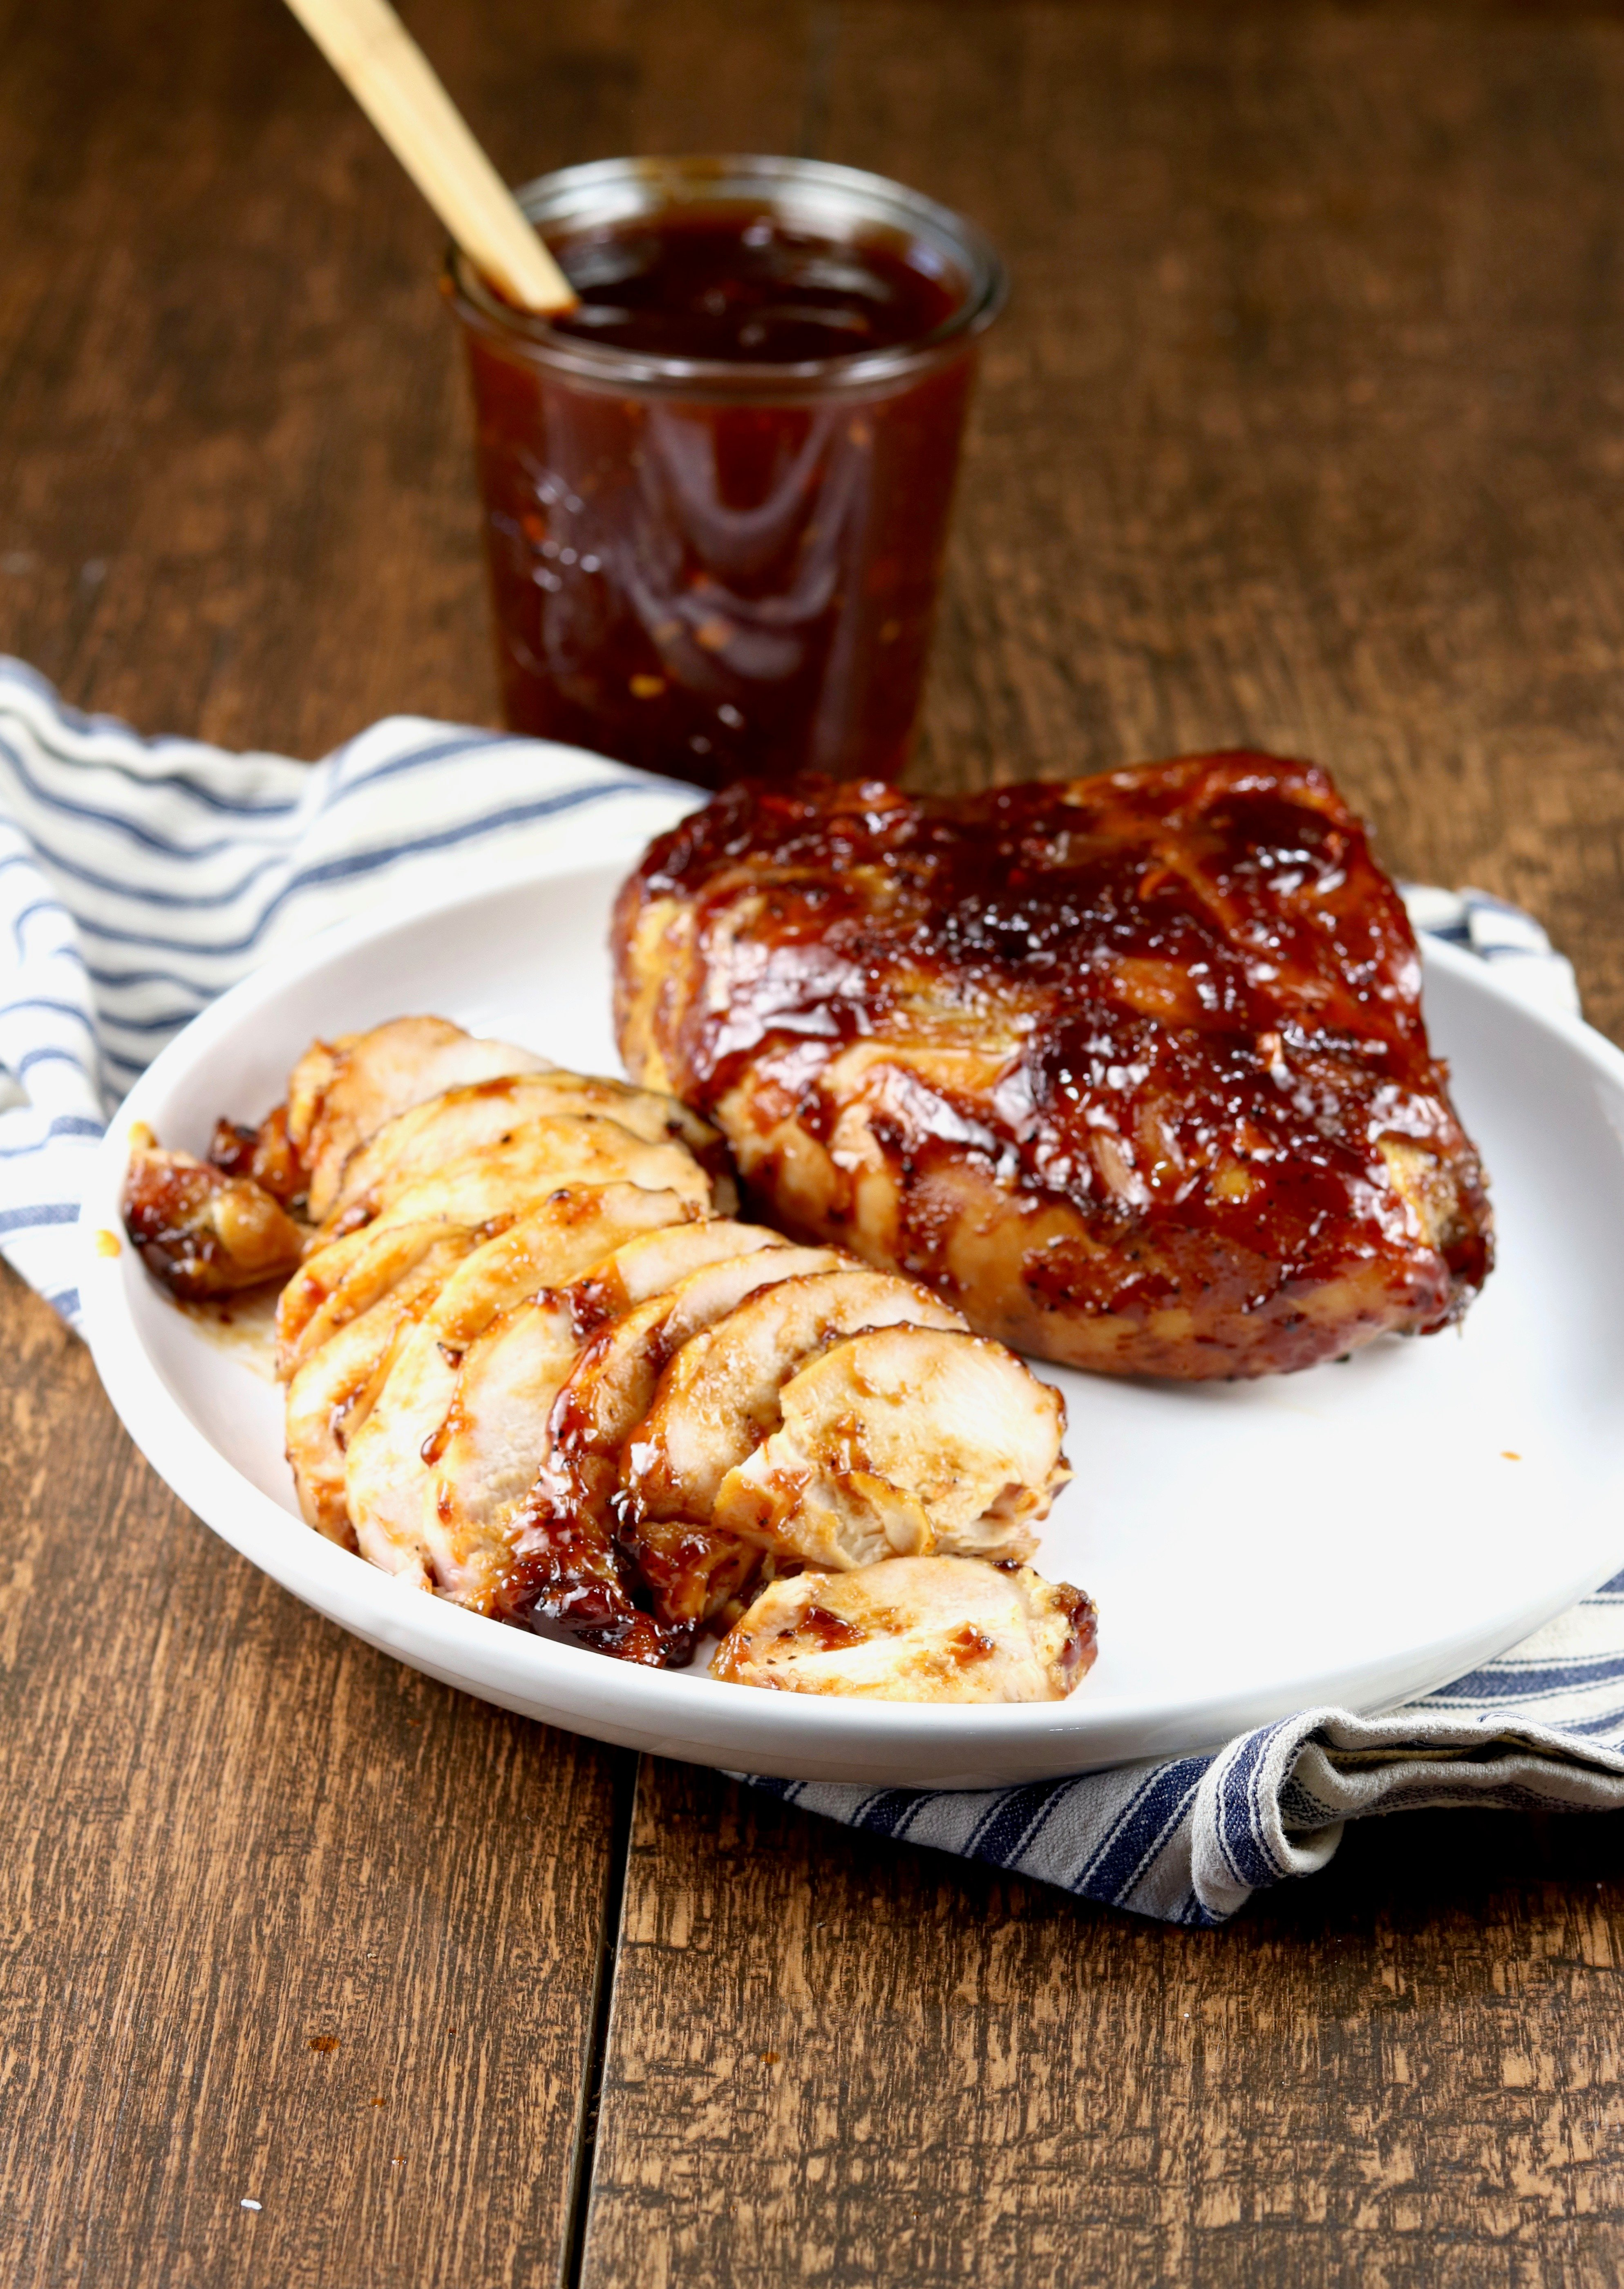 Grilled Bbq Chicken Video Secrets To Keep It Juicy Miss In The Kitchen